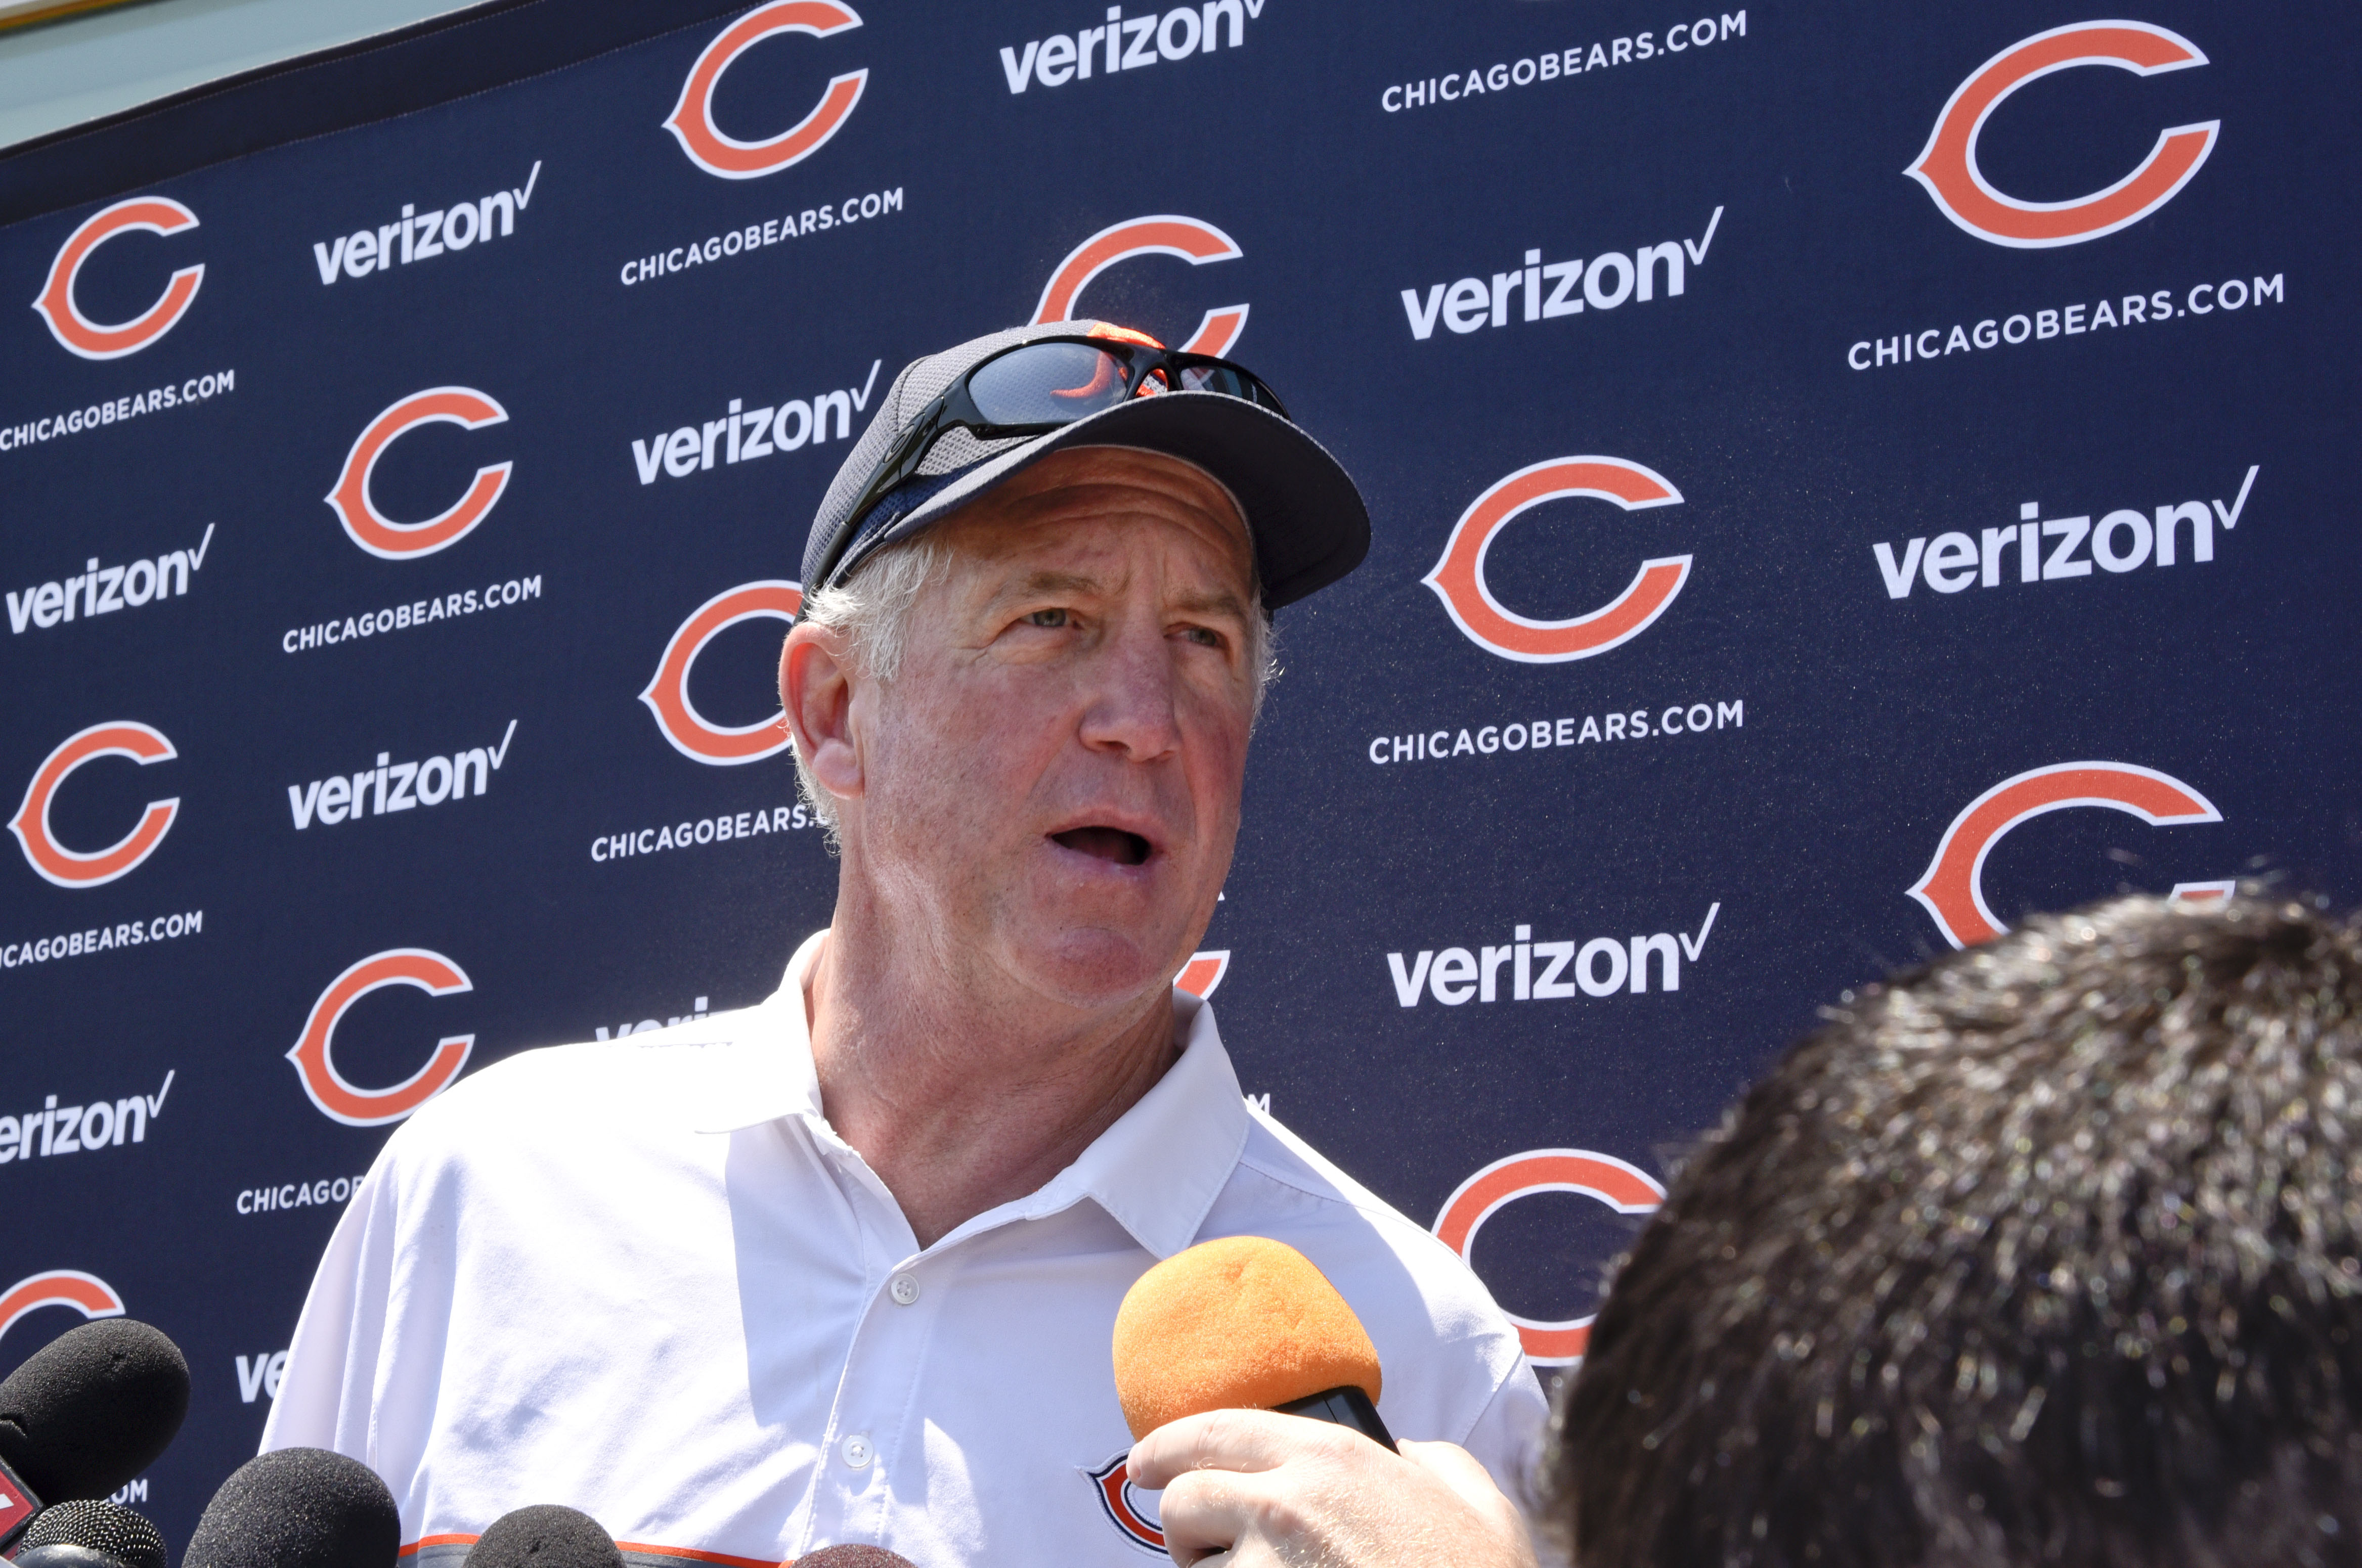 10106813-nfl-chicago-bears-minicamp